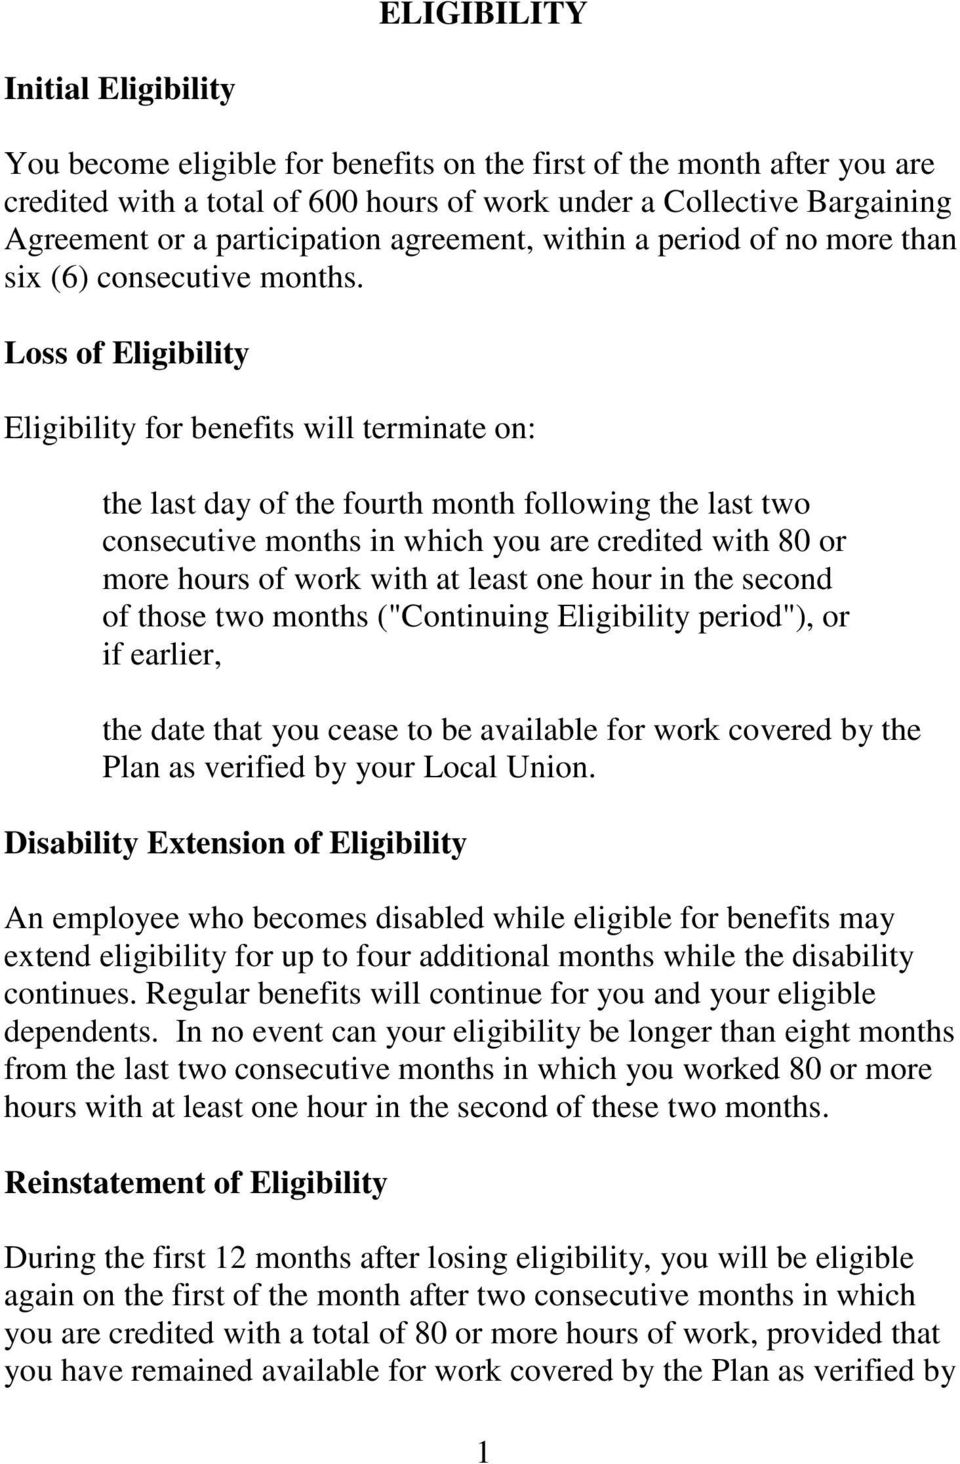 Loss of Eligibility Eligibility for benefits will terminate on: the last day of the fourth month following the last two consecutive months in which you are credited with 80 or more hours of work with